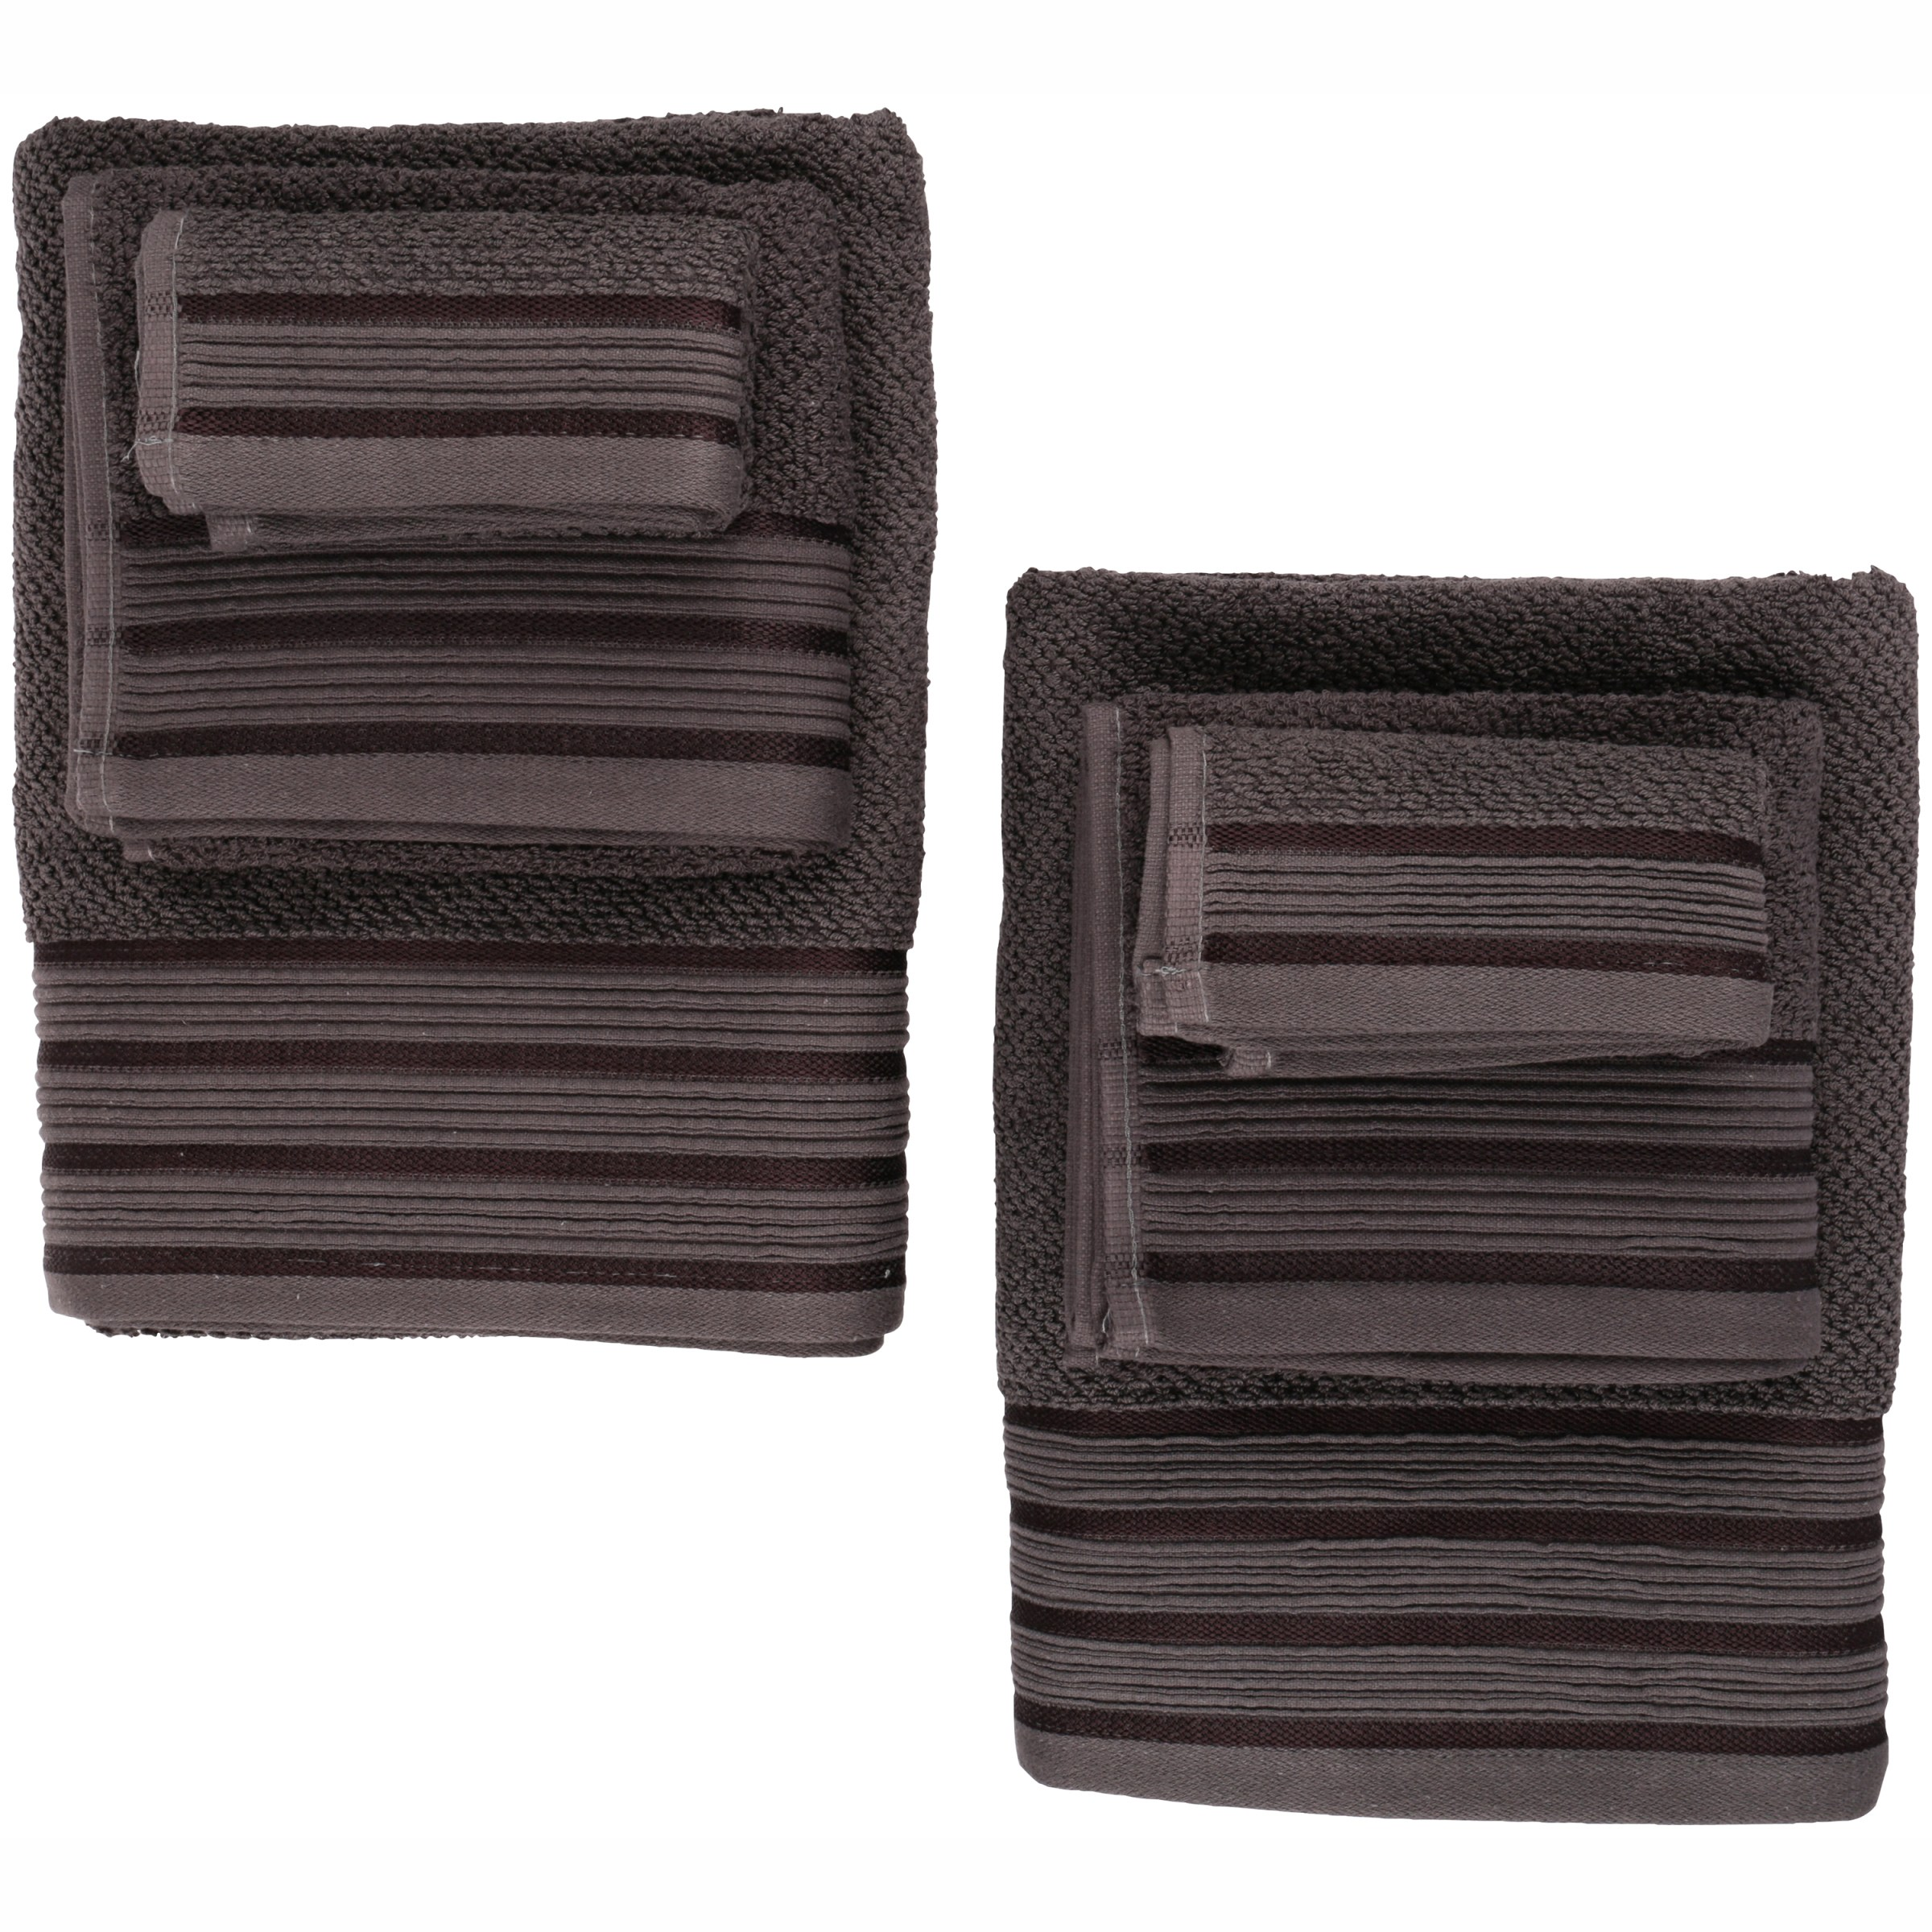 Better Homes & Gardens 6-Piece Towel Set Honey Comb by Wal-Mart Stores, Inc.